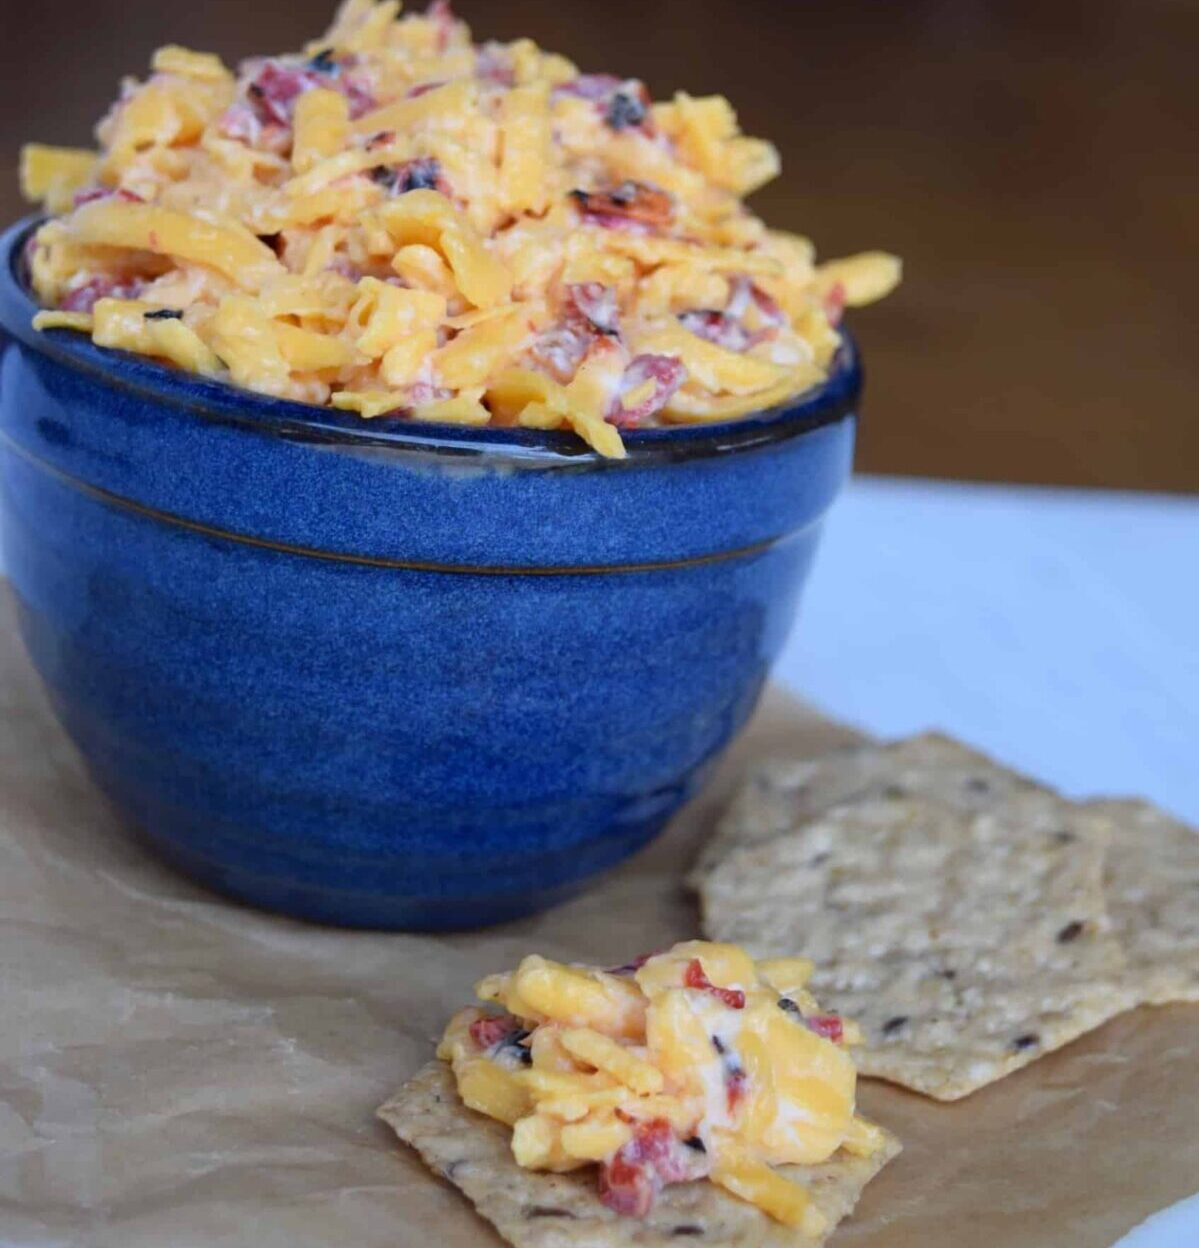 Pimiento Cheese in a blue bowl and on a cracker